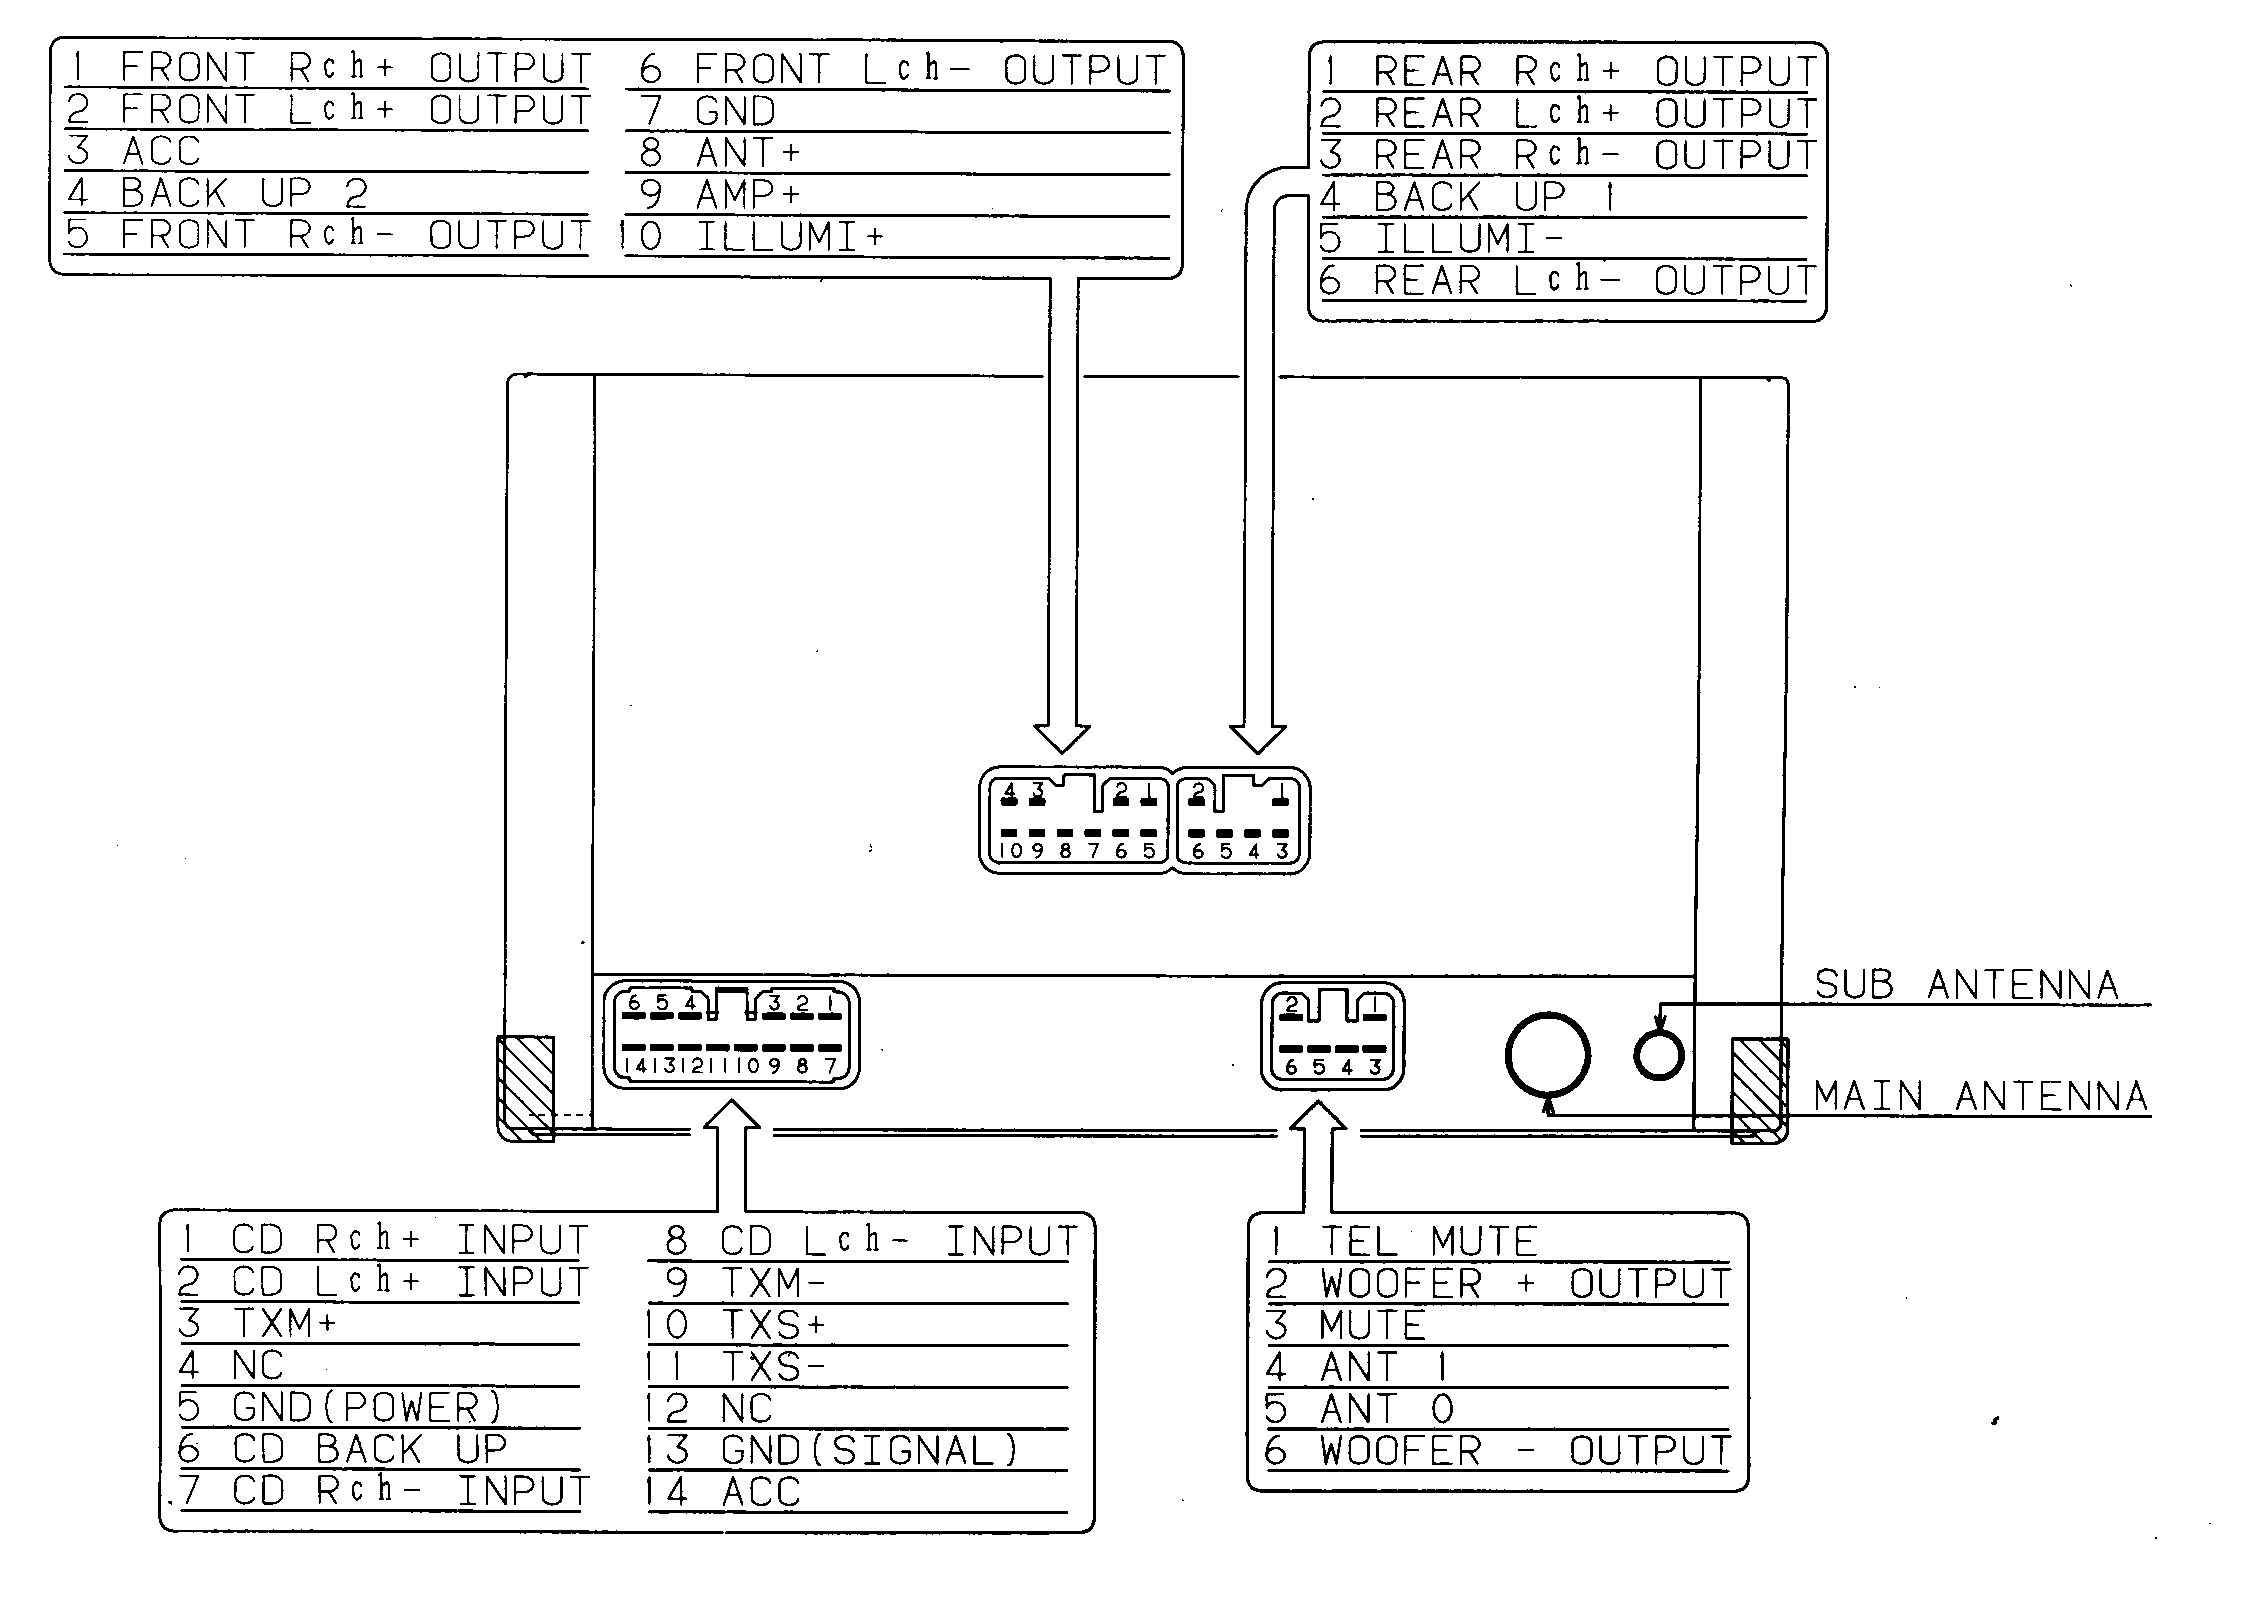 WireHarnessLexus121001 car audio wire diagram codes lexus factory car stereo repair lexus wiring diagram at mifinder.co